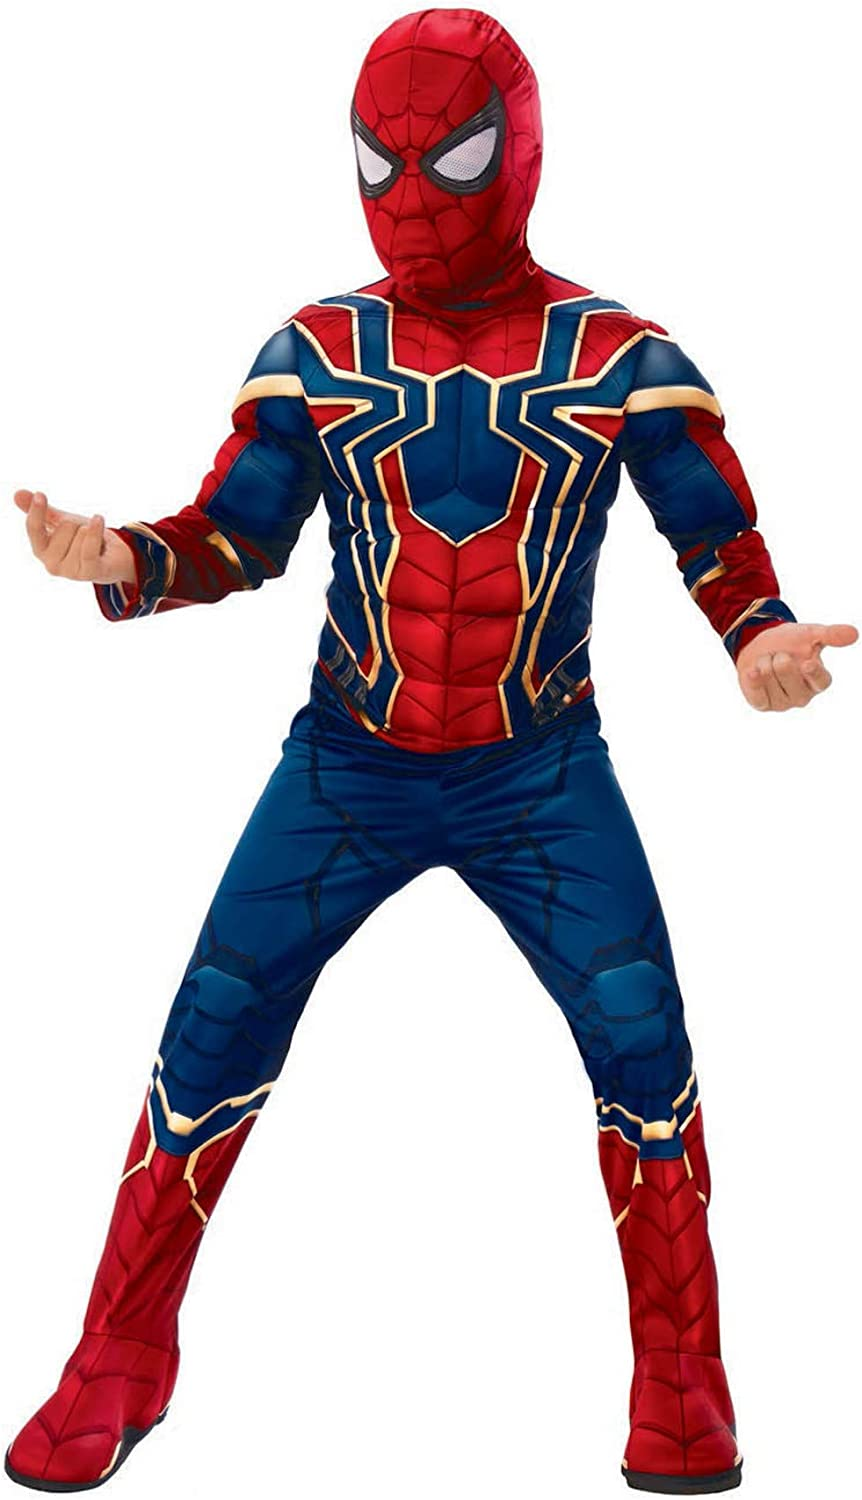 Official Avengers Infinity Wars Iron Spider Spiderman Classic Child Costume